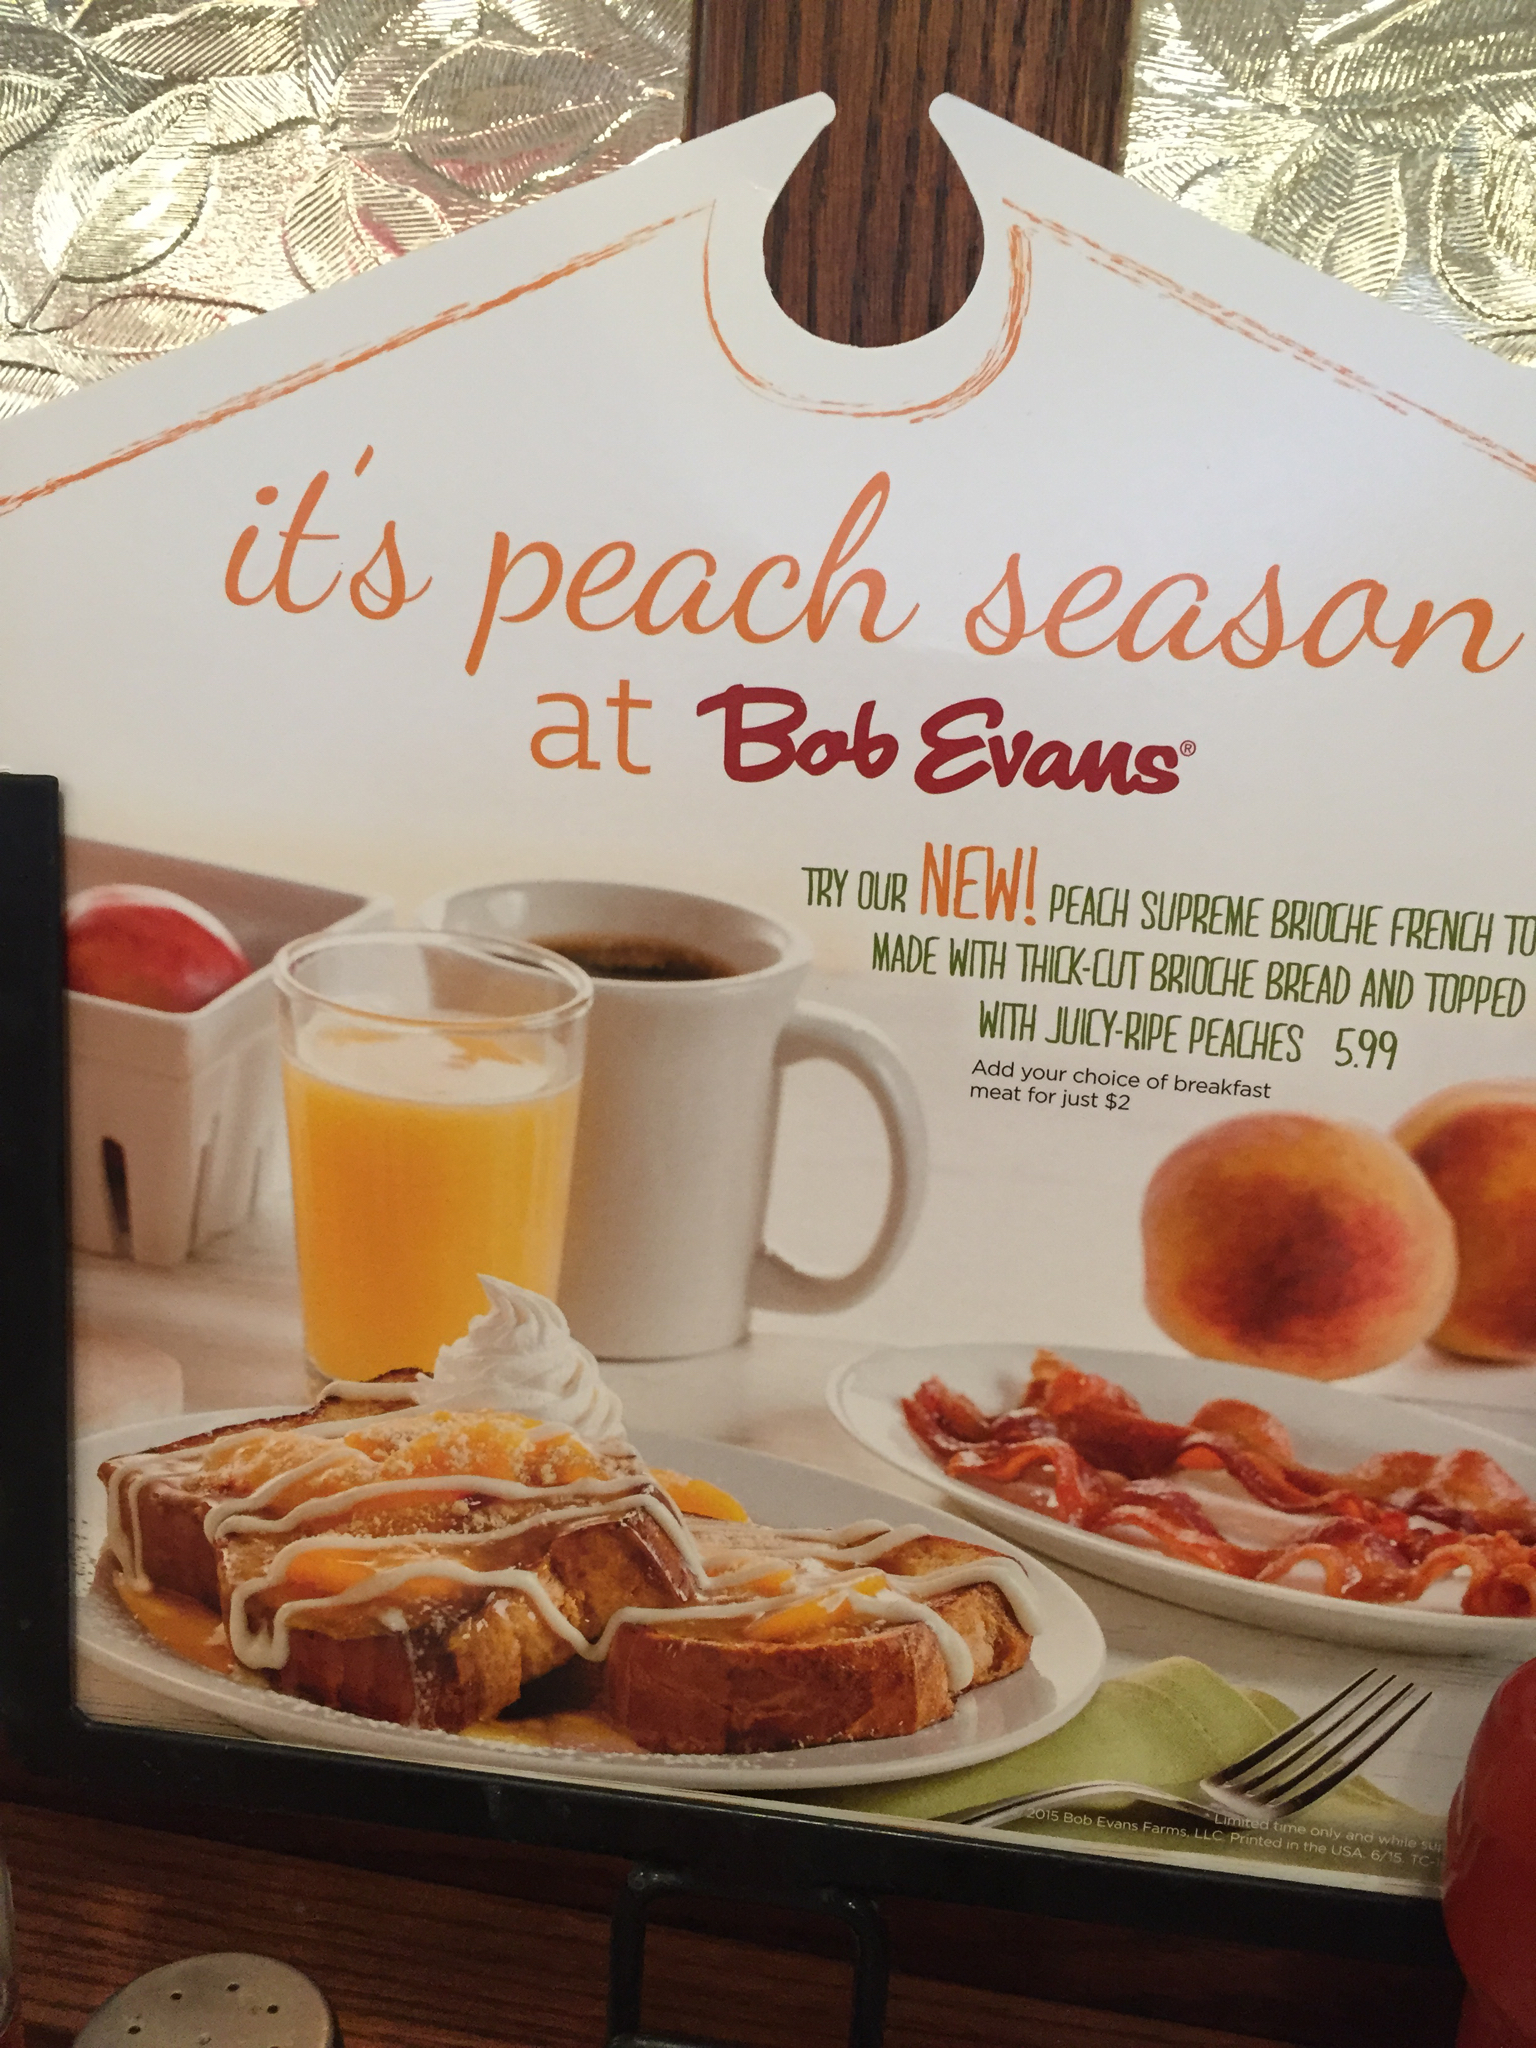 Bob Evans Restaurant, New Castle PA